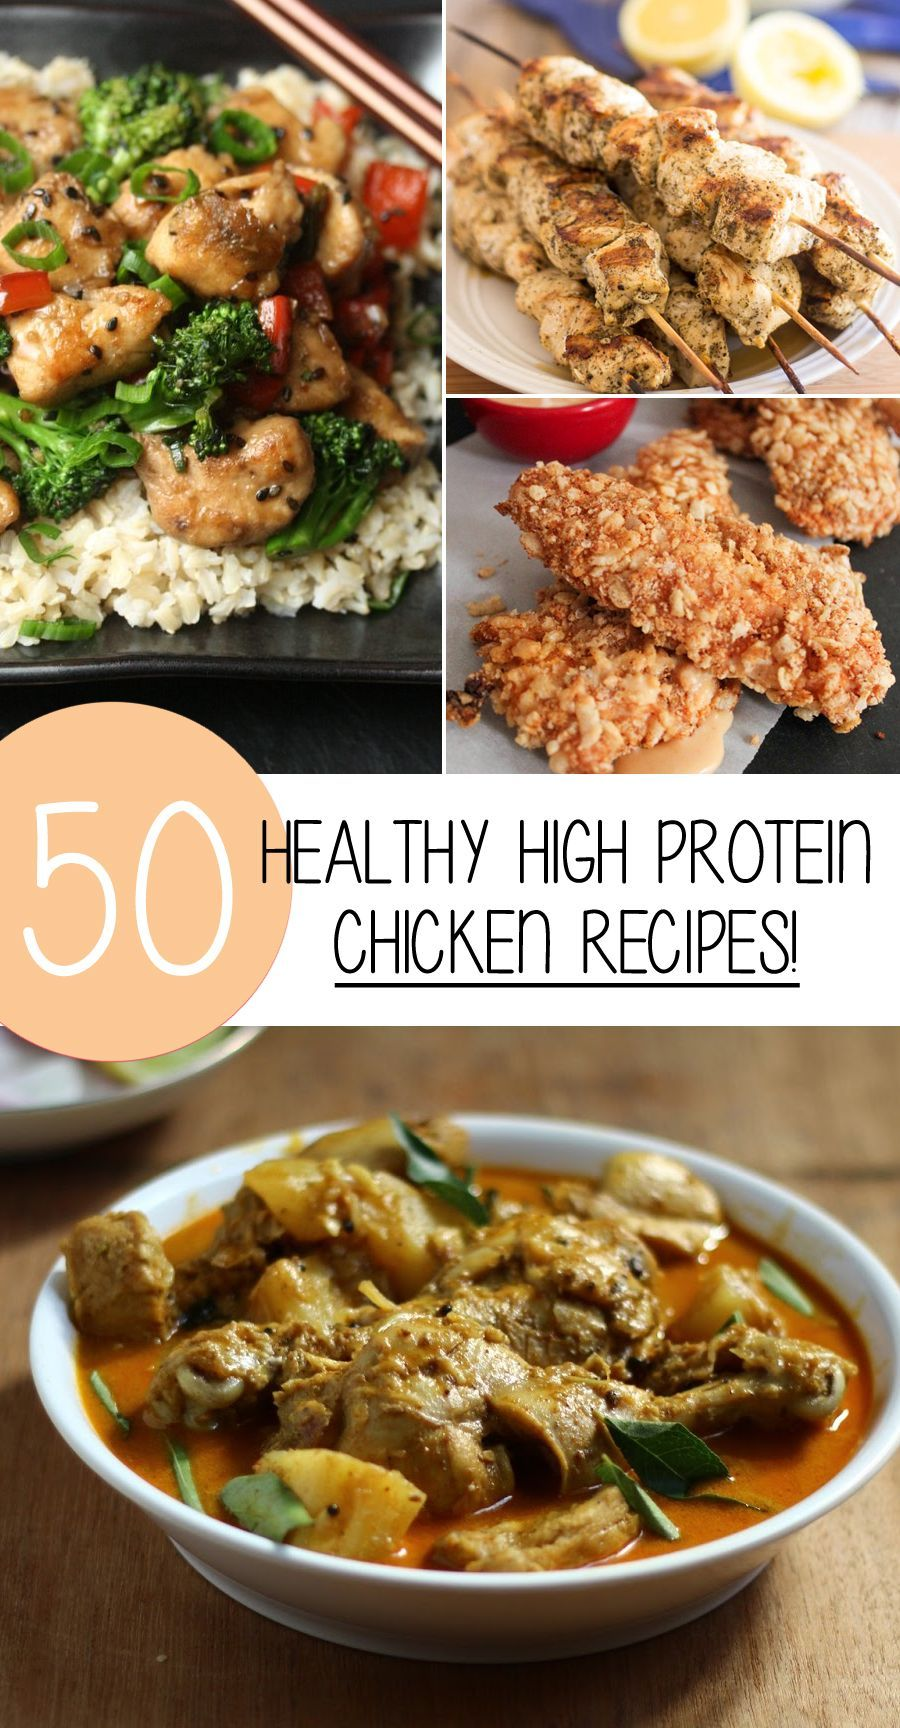 50 high protein chicken recipes that are healthy and delicious here is a collection of 50 of the best chicken recipes ever from some amazing food blogs and recipe websites chicken has always been a fitness and forumfinder Gallery